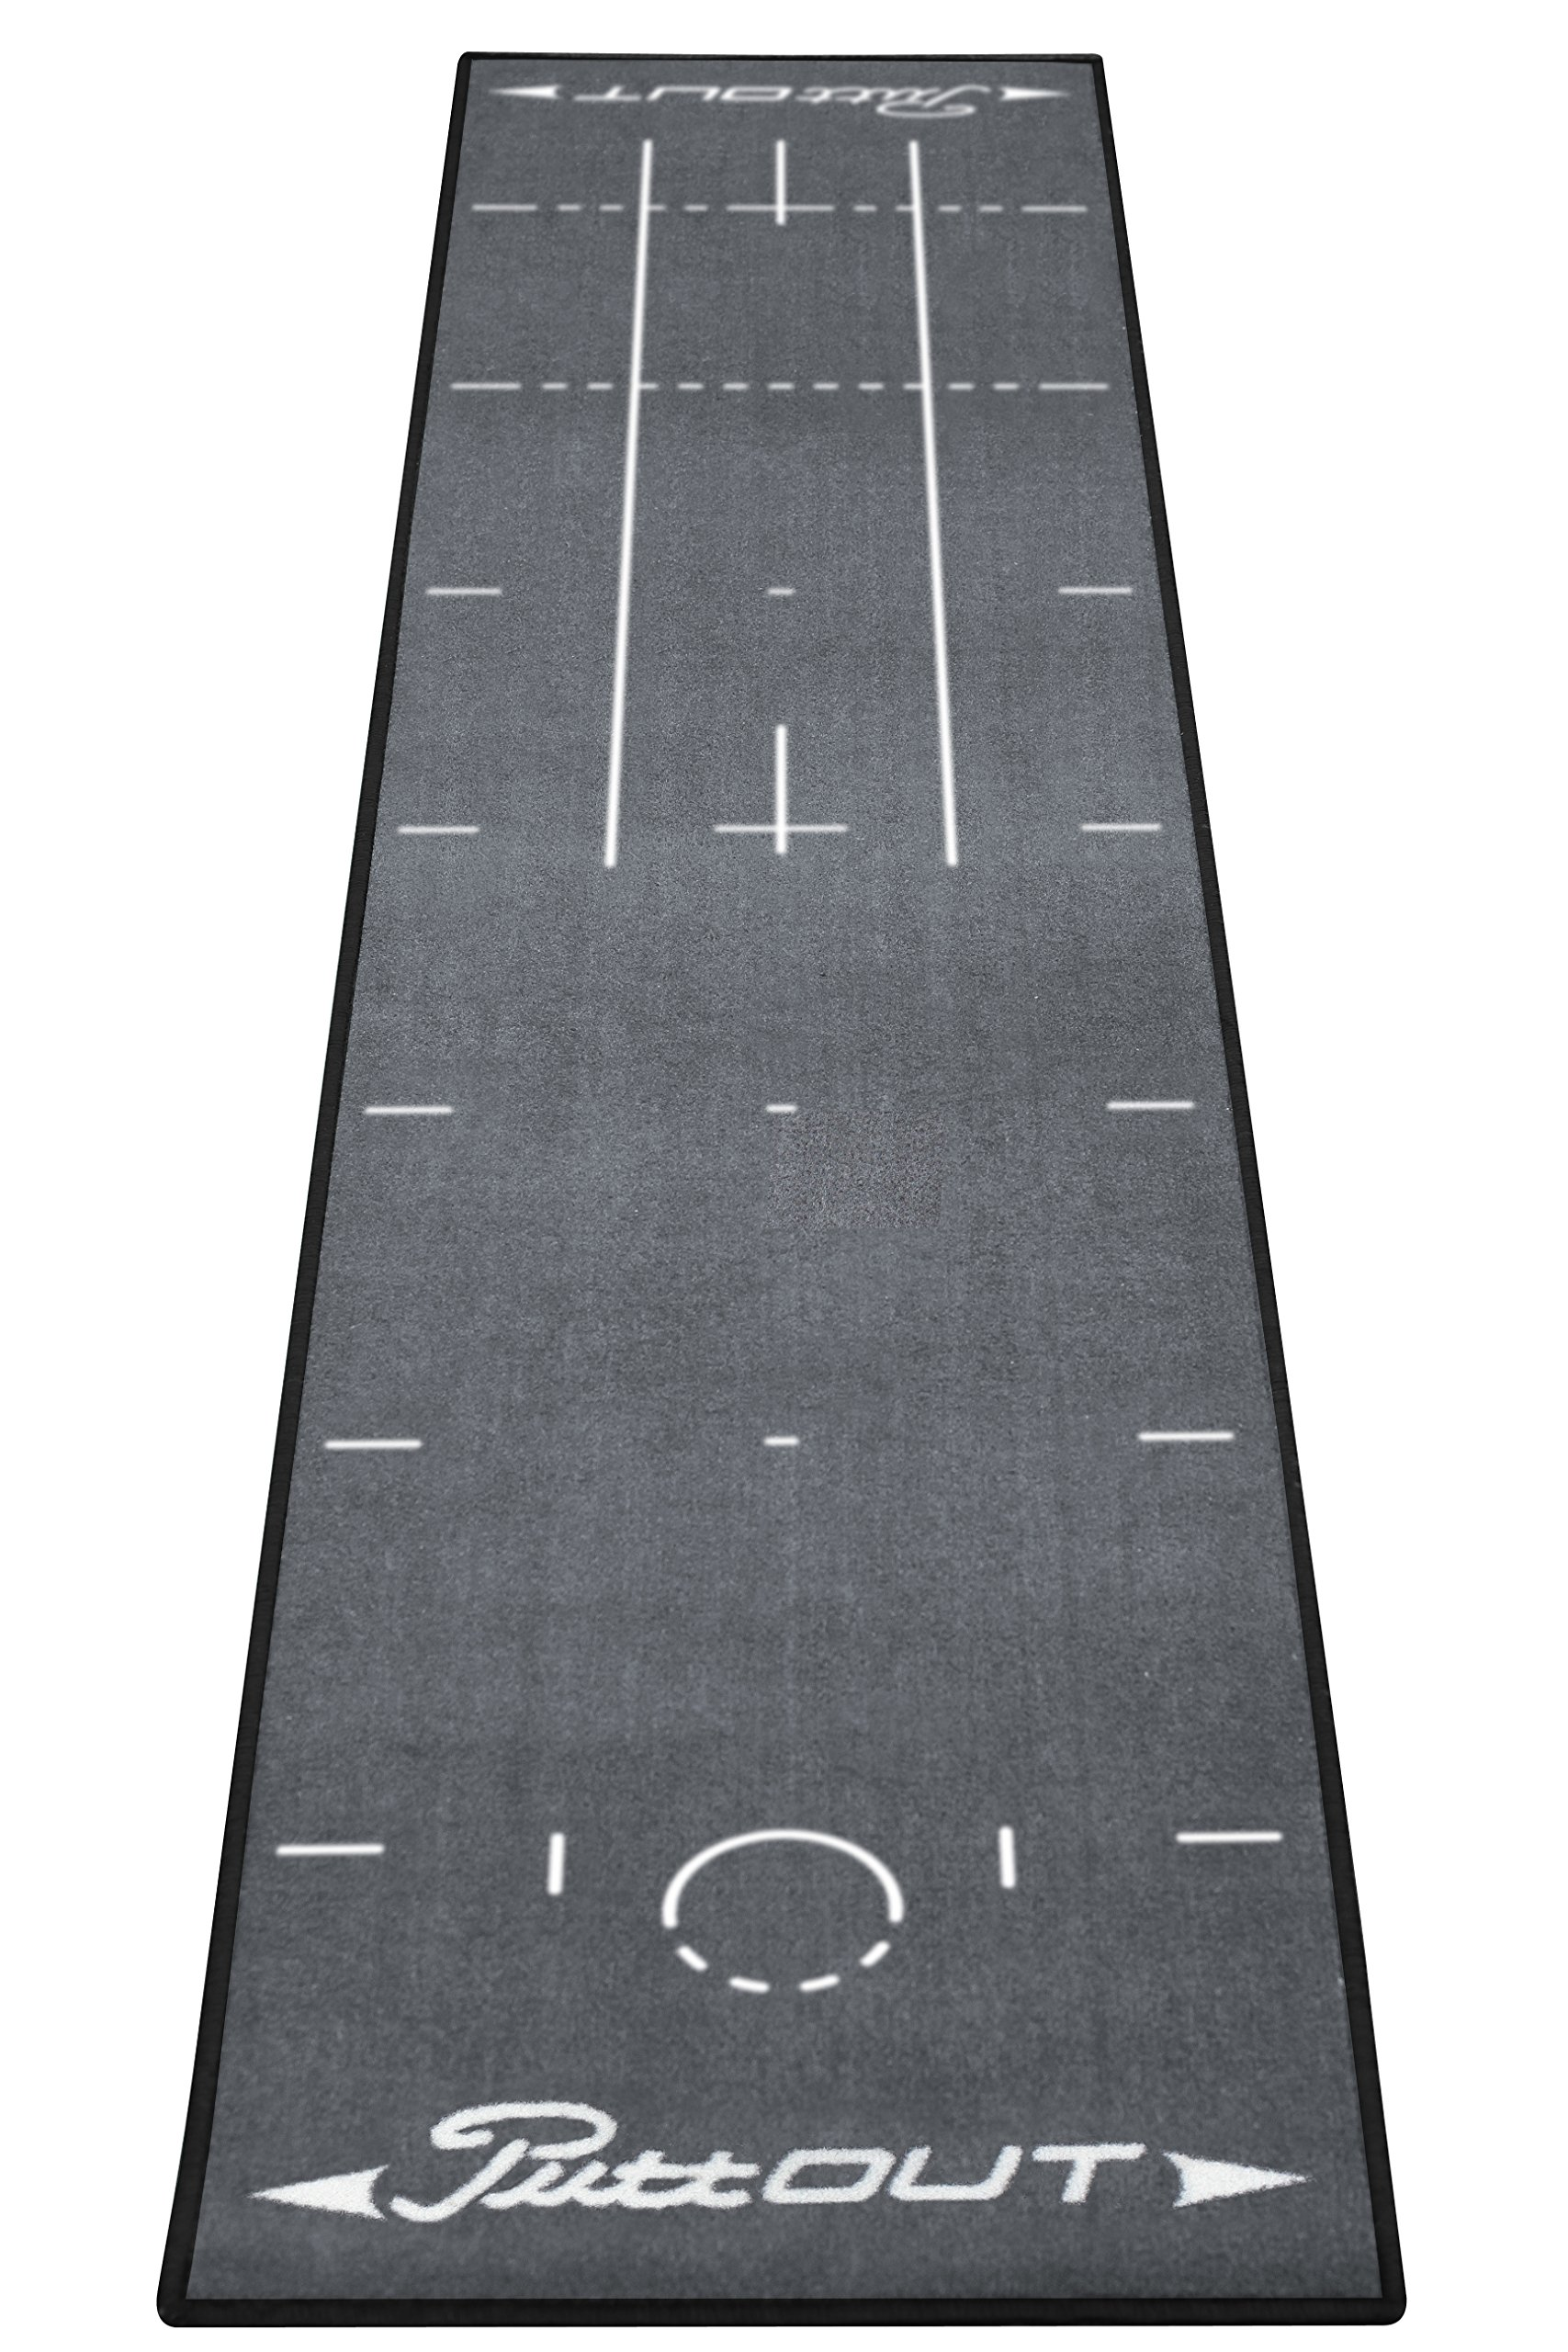 PuttOut Pro Golf Putting Mat - Perfect Your Putting (7.87-feet x 1.64-feet) by PuttOut (Image #2)